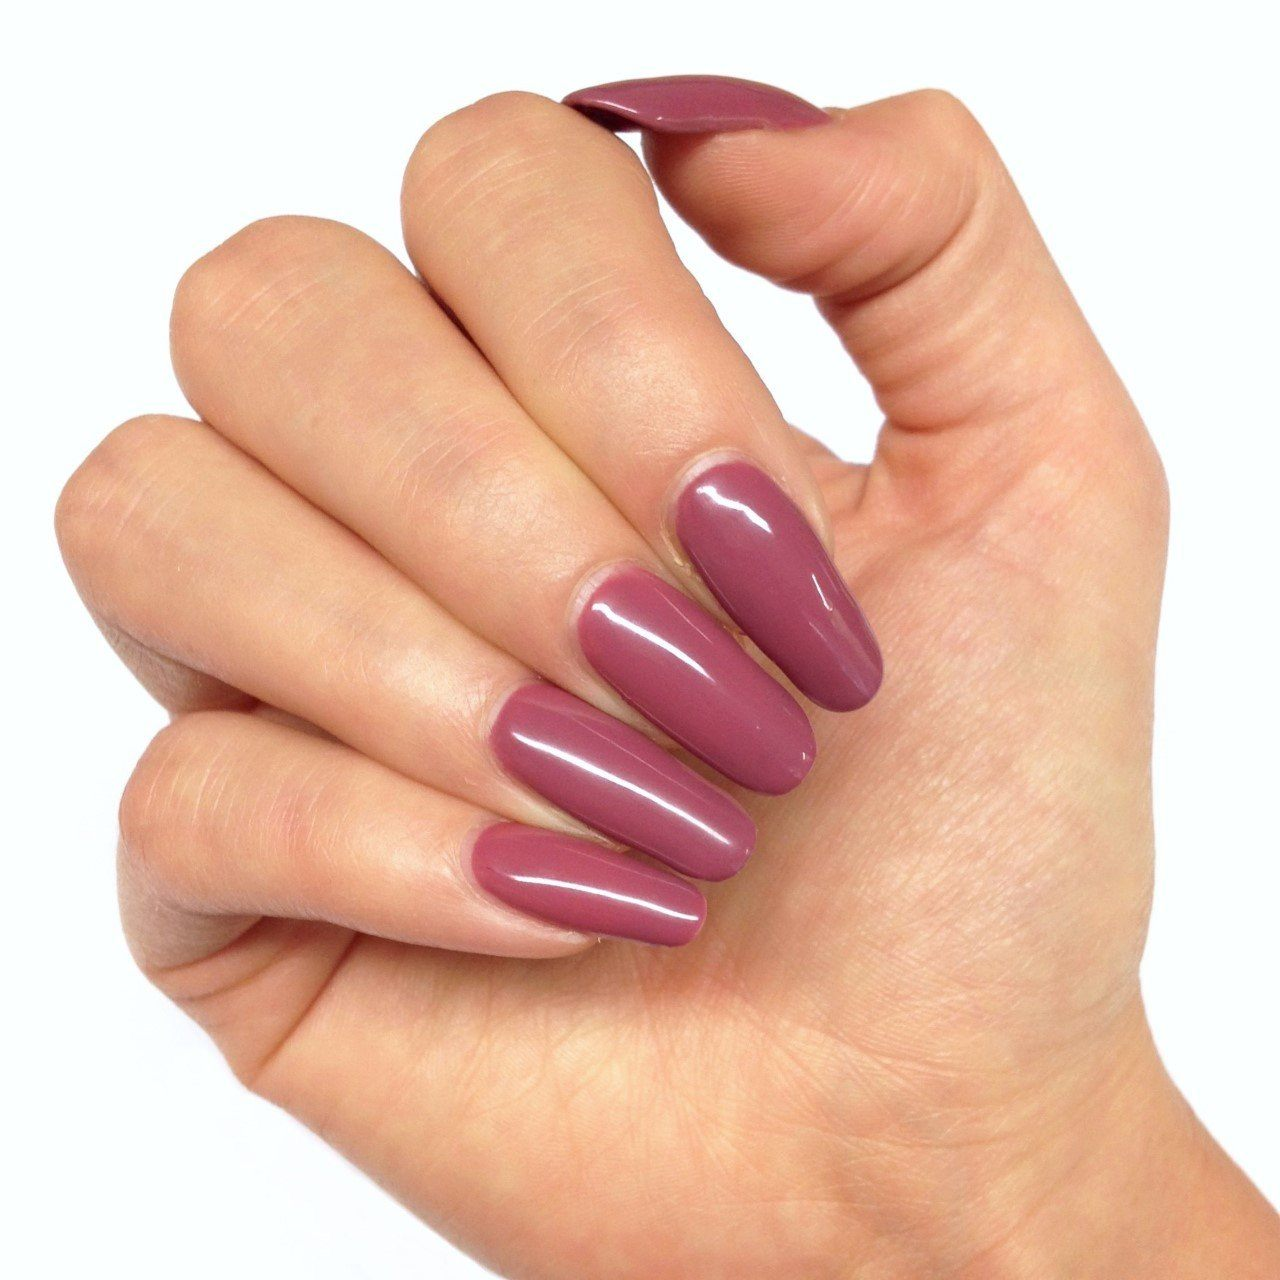 Bluesky Dark Musky Pink Nail Gel Polish MARSALA - UV/LED Soak Off 10ml - Bluesky Nail Gel Polish